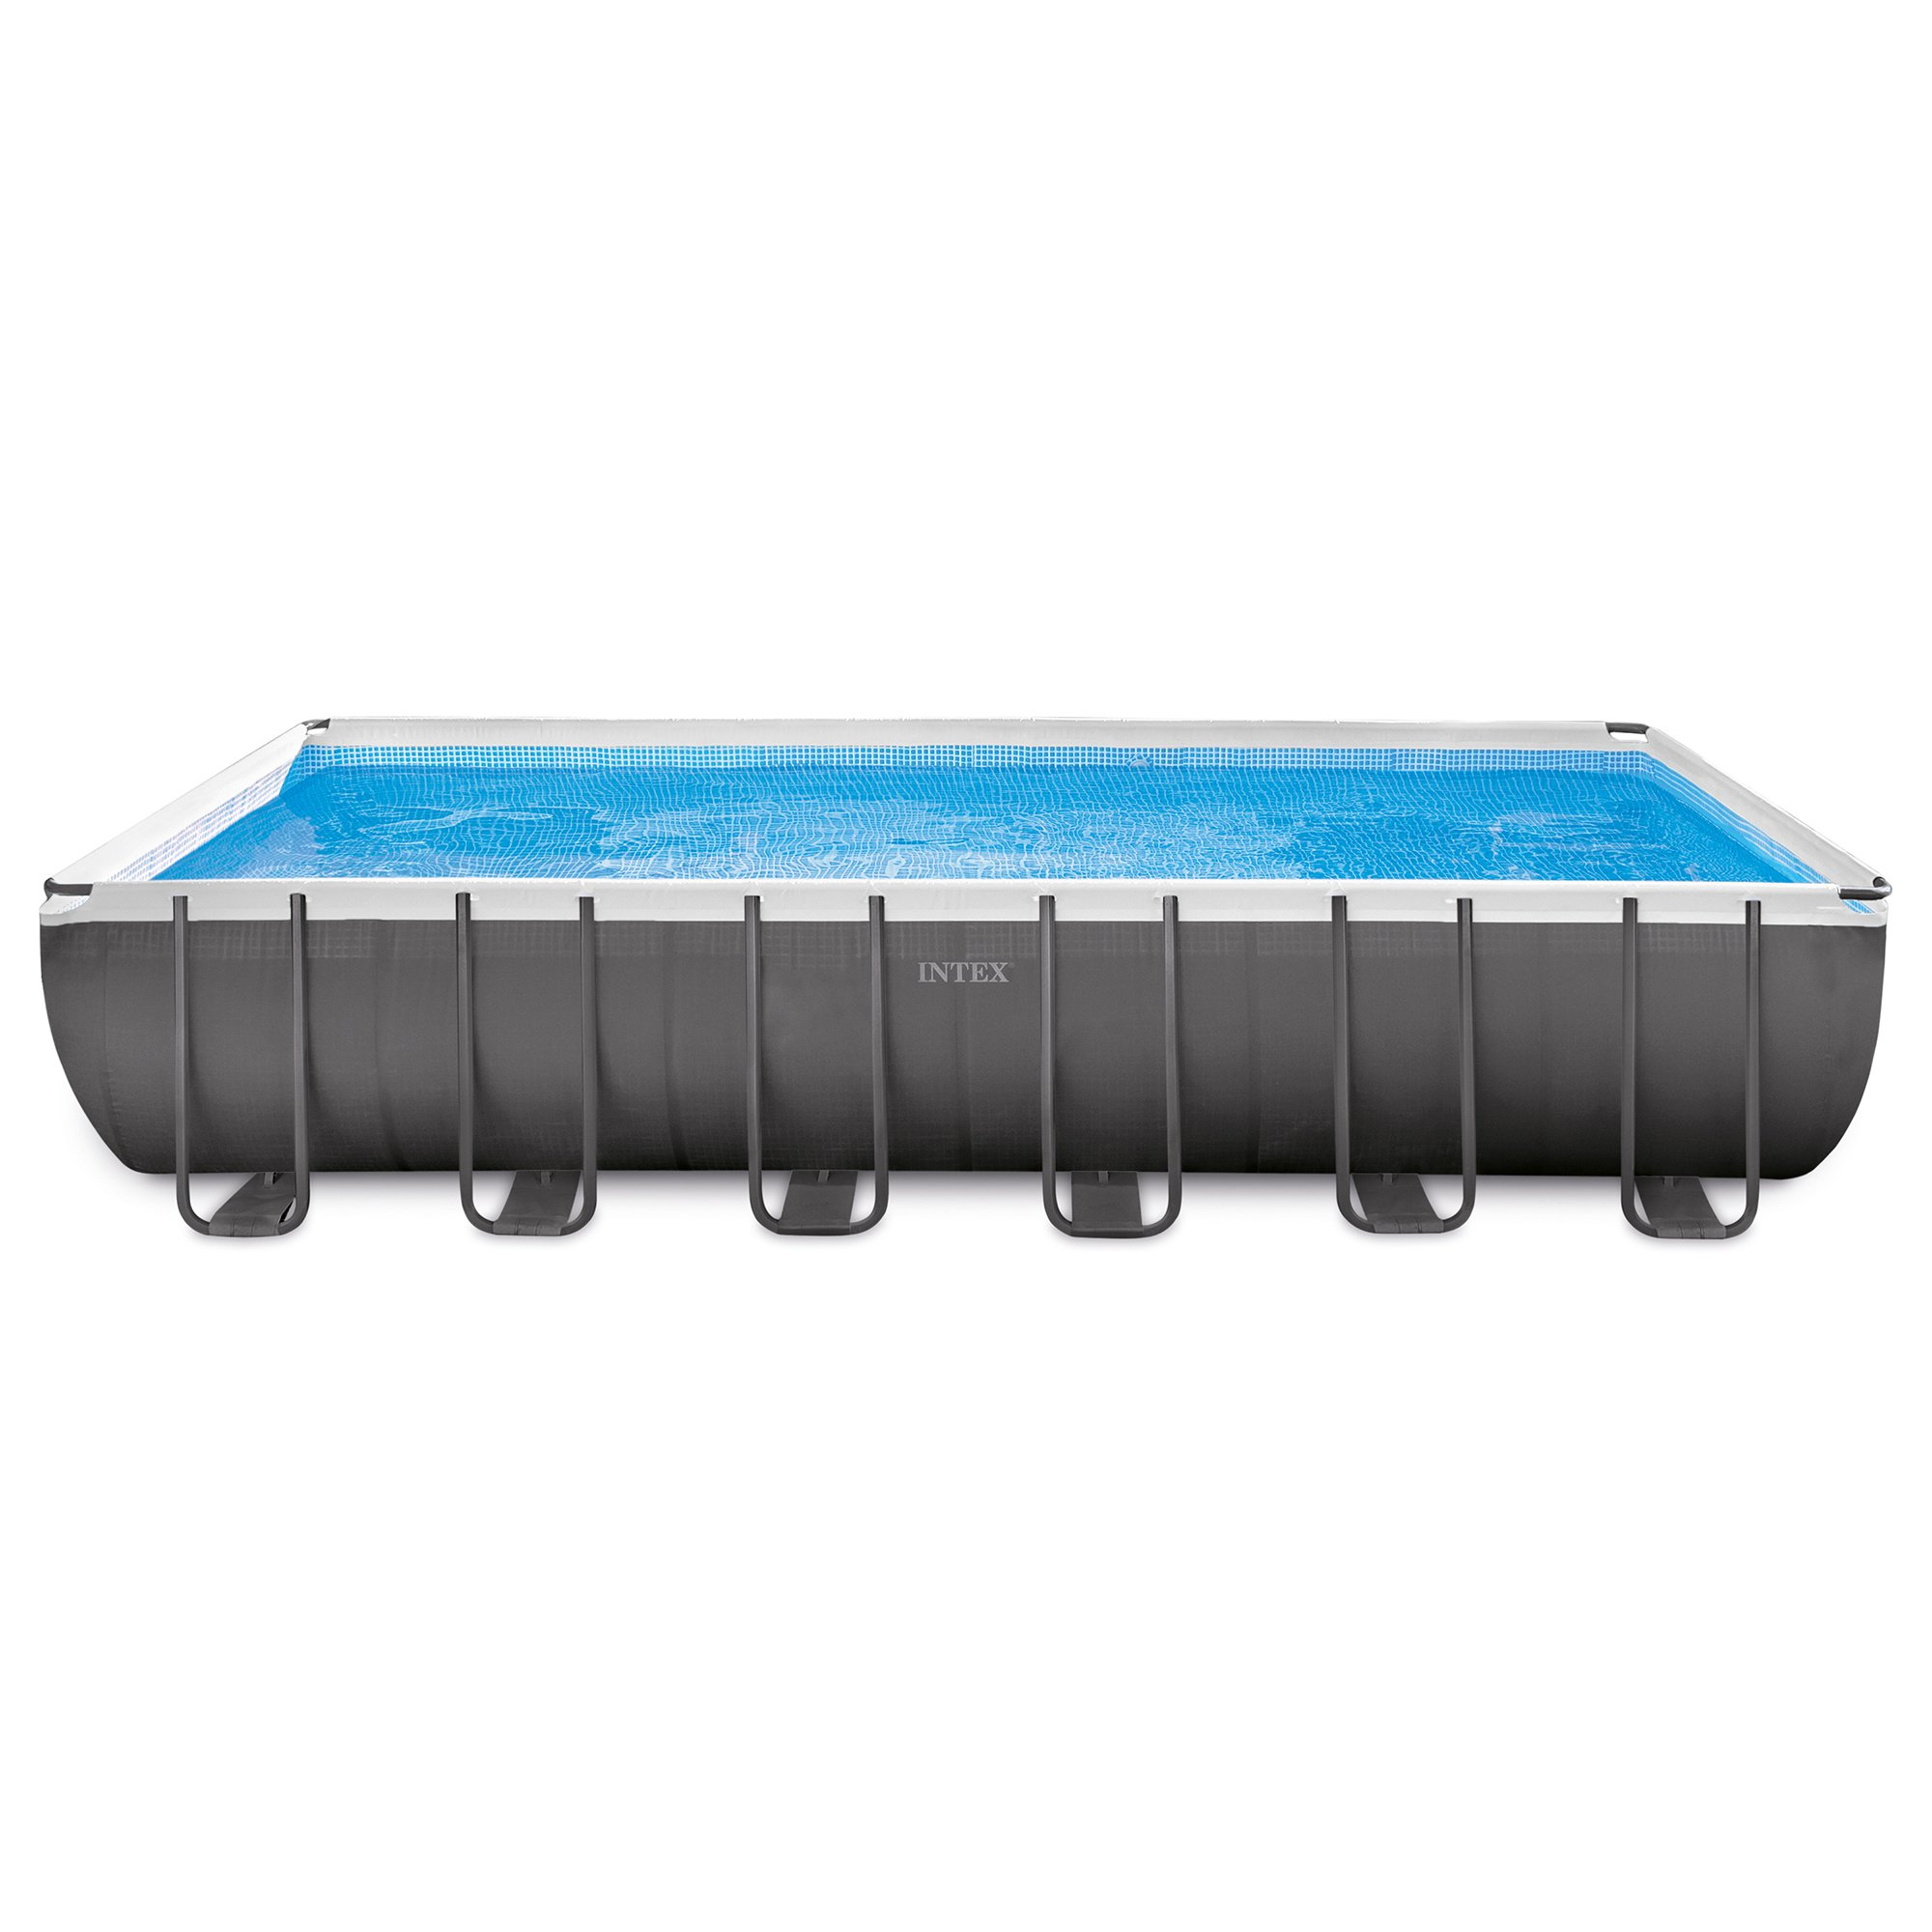 Intex 24 x 12 x 4.3 Foot Ultra Frame Pool Set with Accessories and Cleaning Kit by